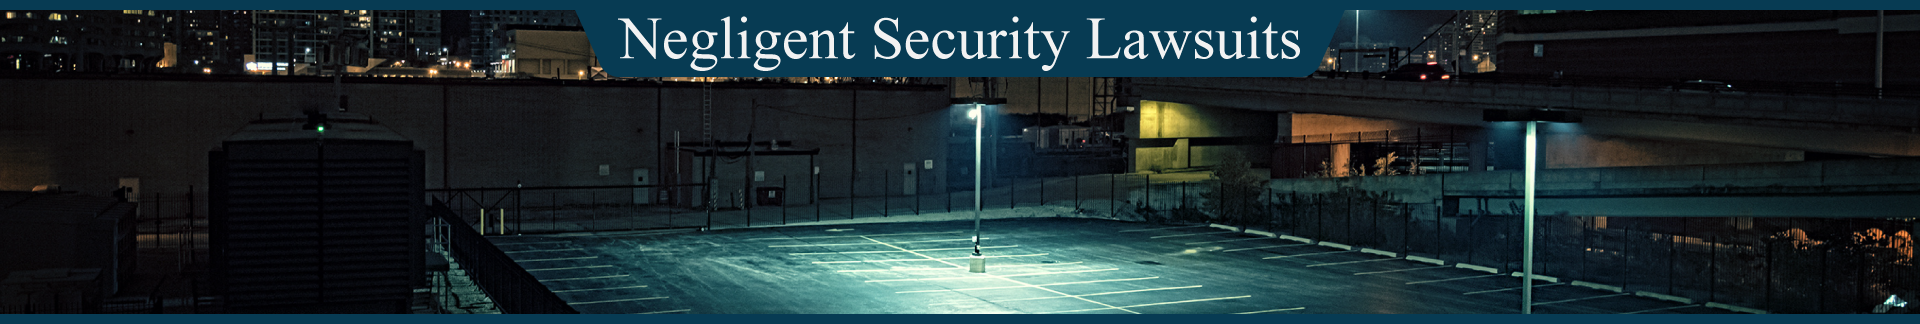 Negligent Security Lawsuit The Peña Law Firm Miami